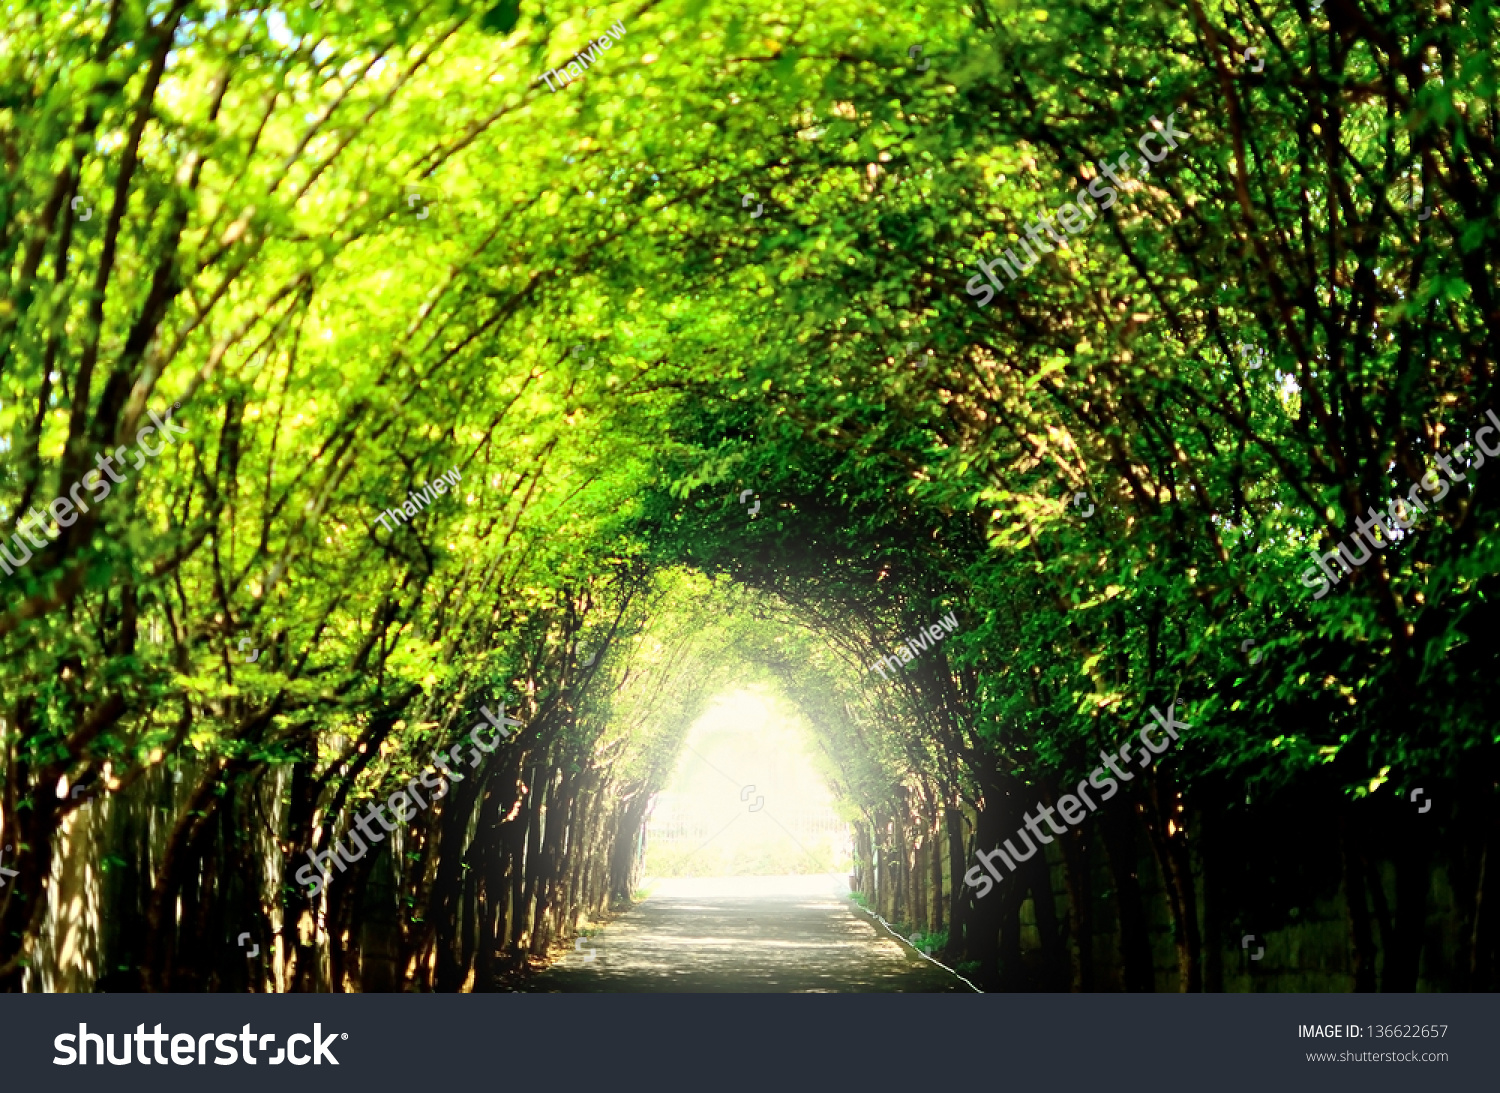 28 Green Tunnel Path Nature Forest Light At The End